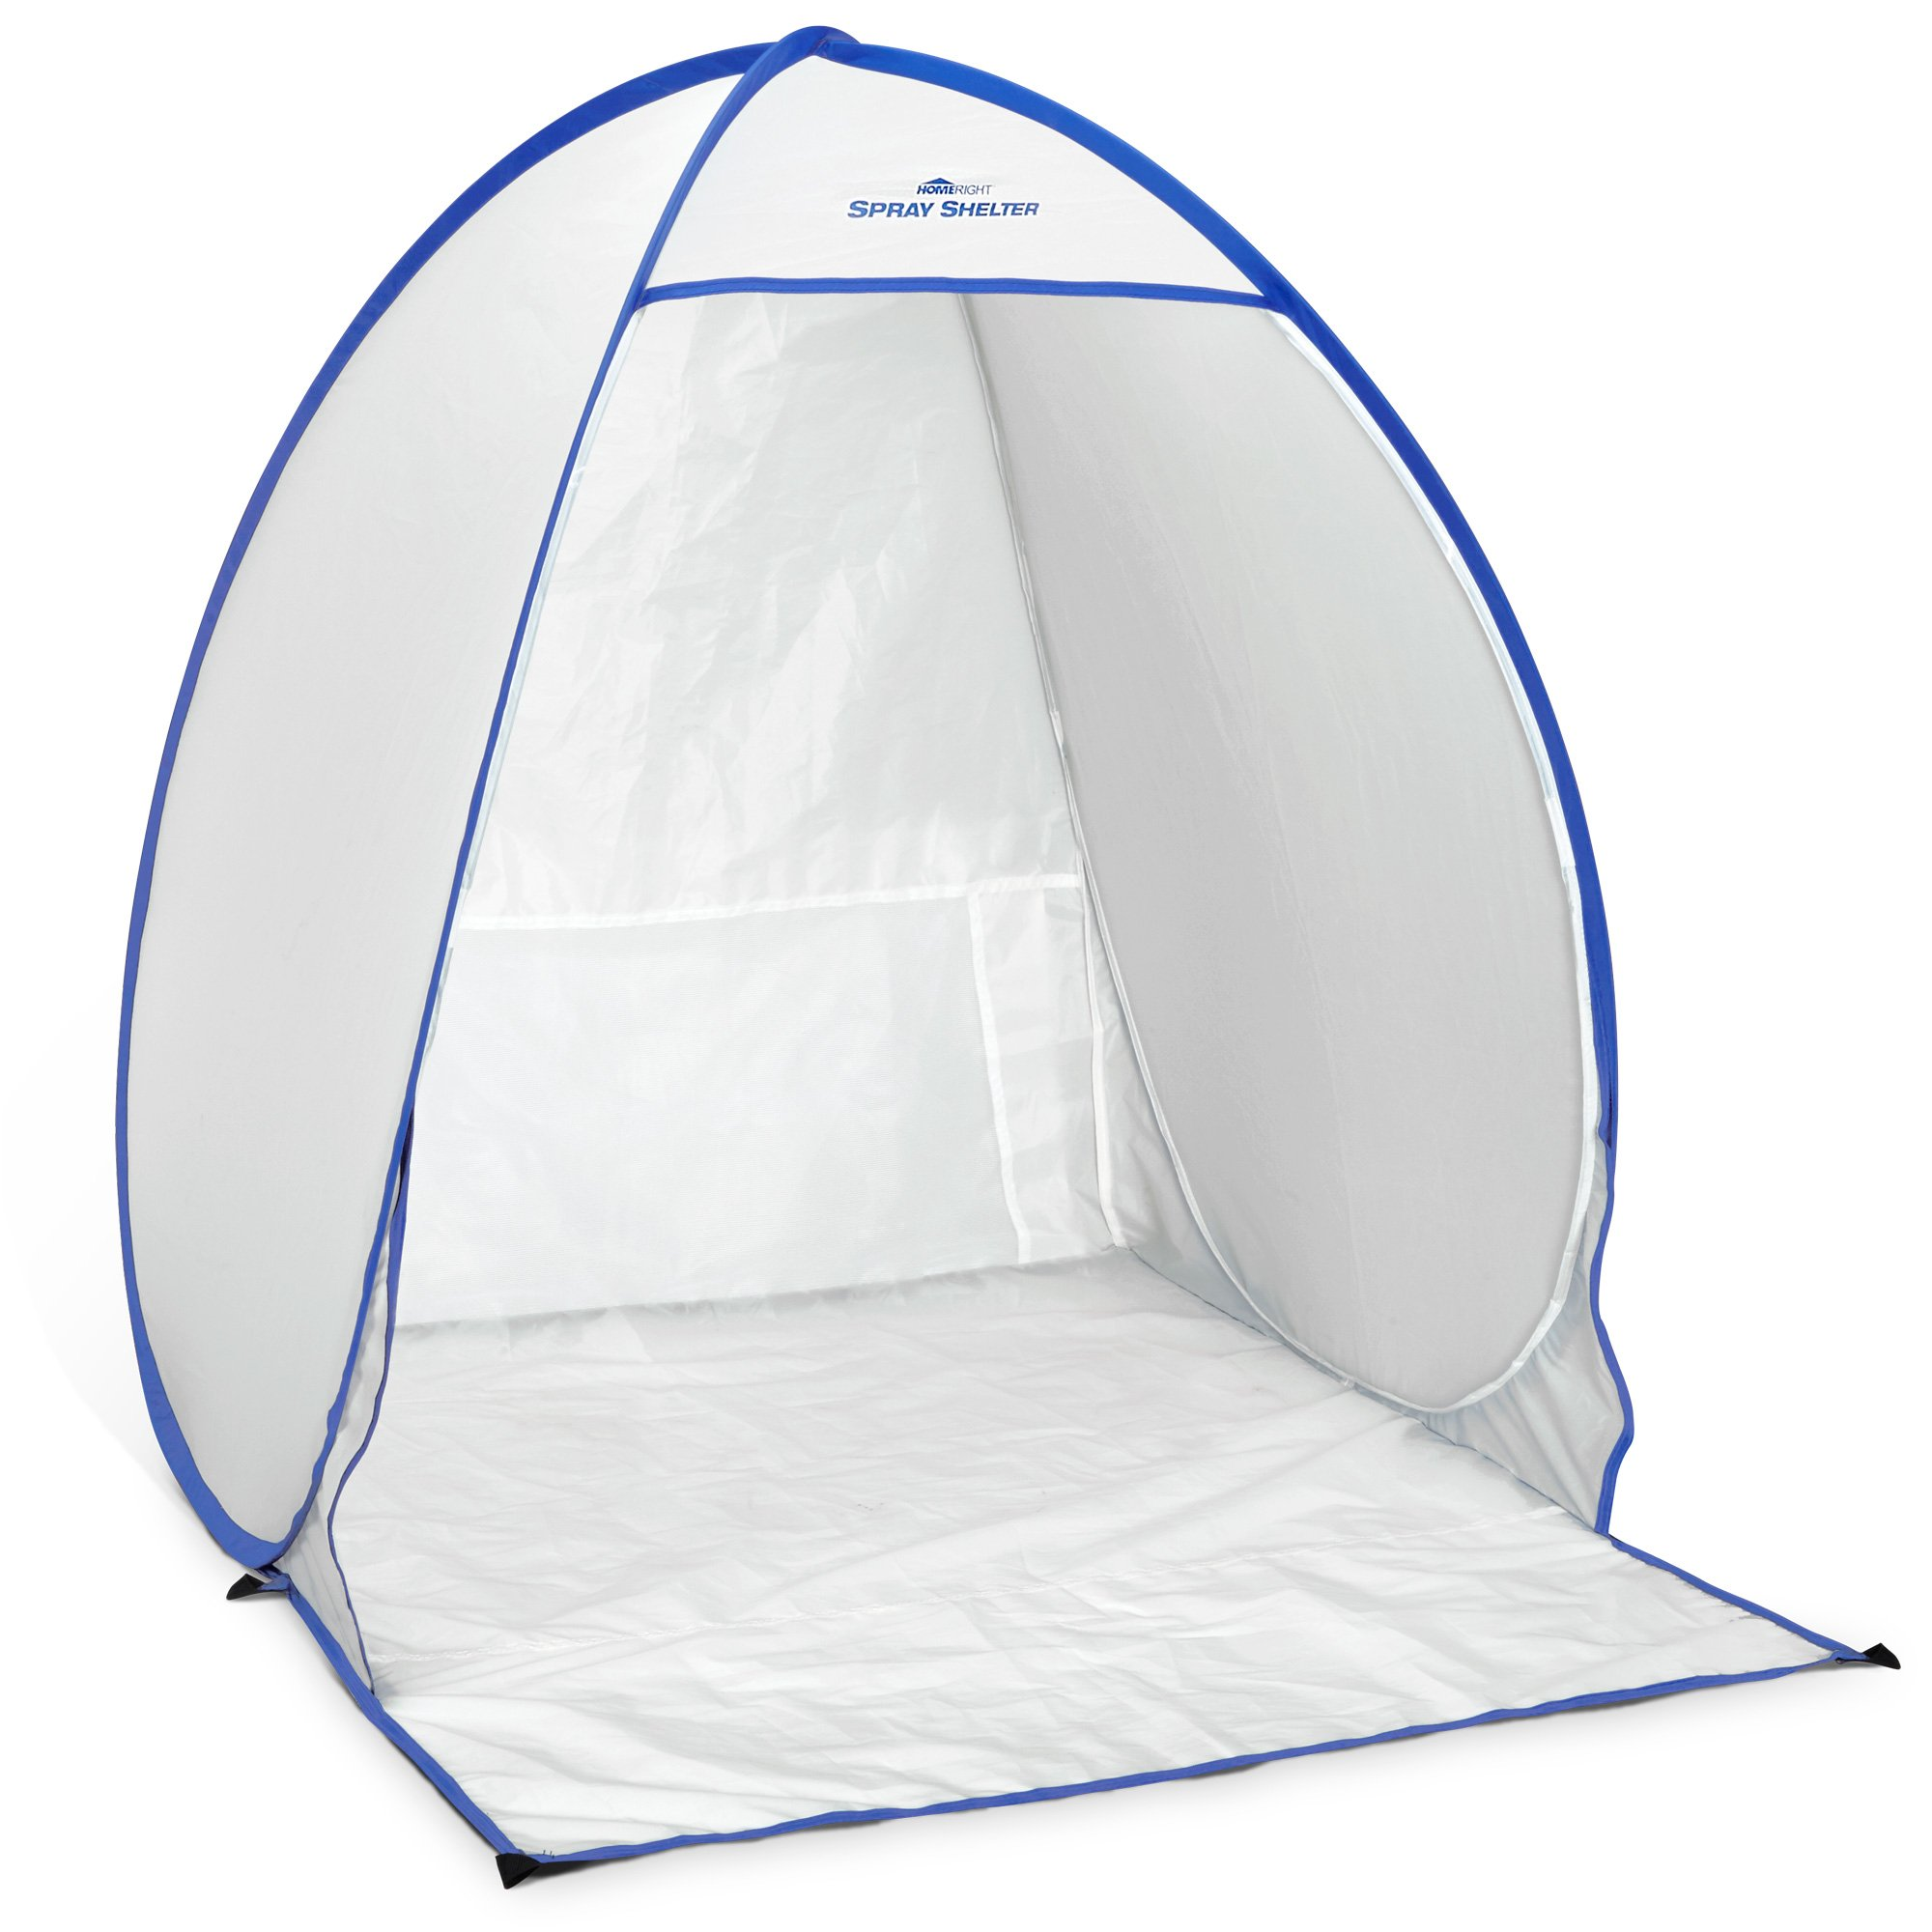 Details about HomeRight Small Spray Shelter C900051 Portable Paint Booth  for DIY Spray